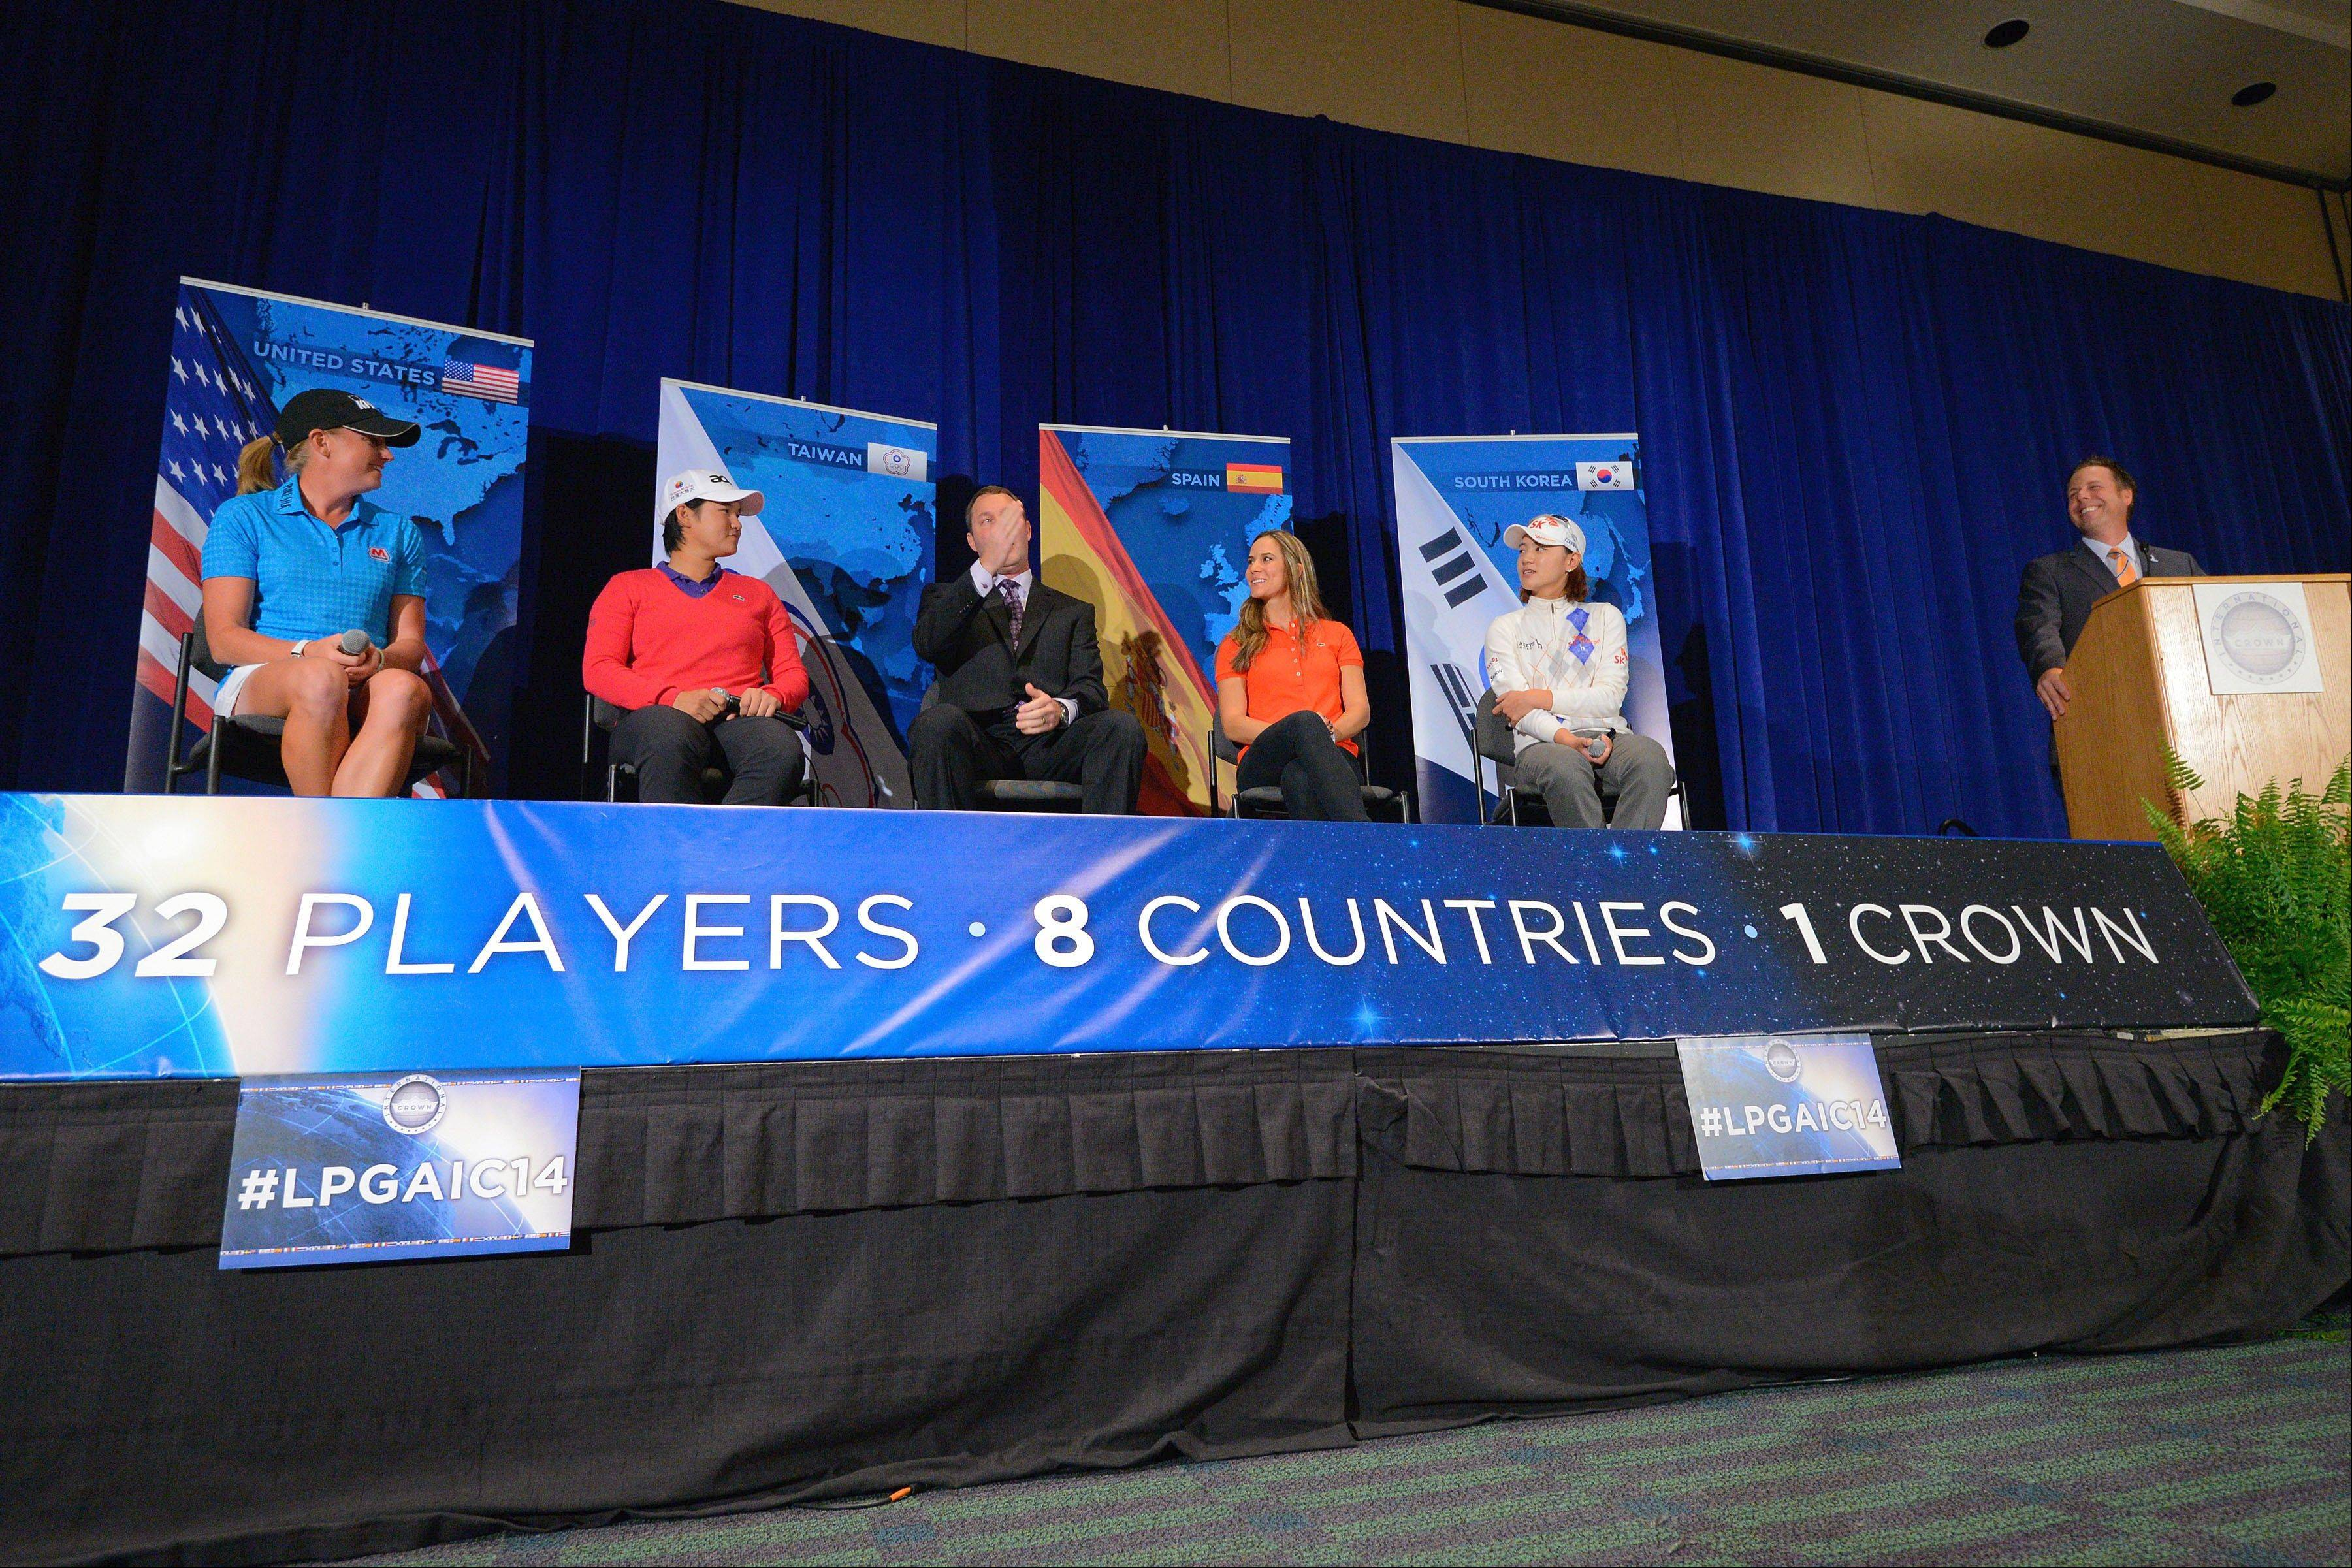 The International Crown, a new LPGA event involving the world's best female golfers, will take place in Maryland in 2014 and move to Rich Harvest Farms in Sugar Grove in 2016. Four top golfers shared the stage Thursday for the announcement with LPGA commissioner Mike Whan.